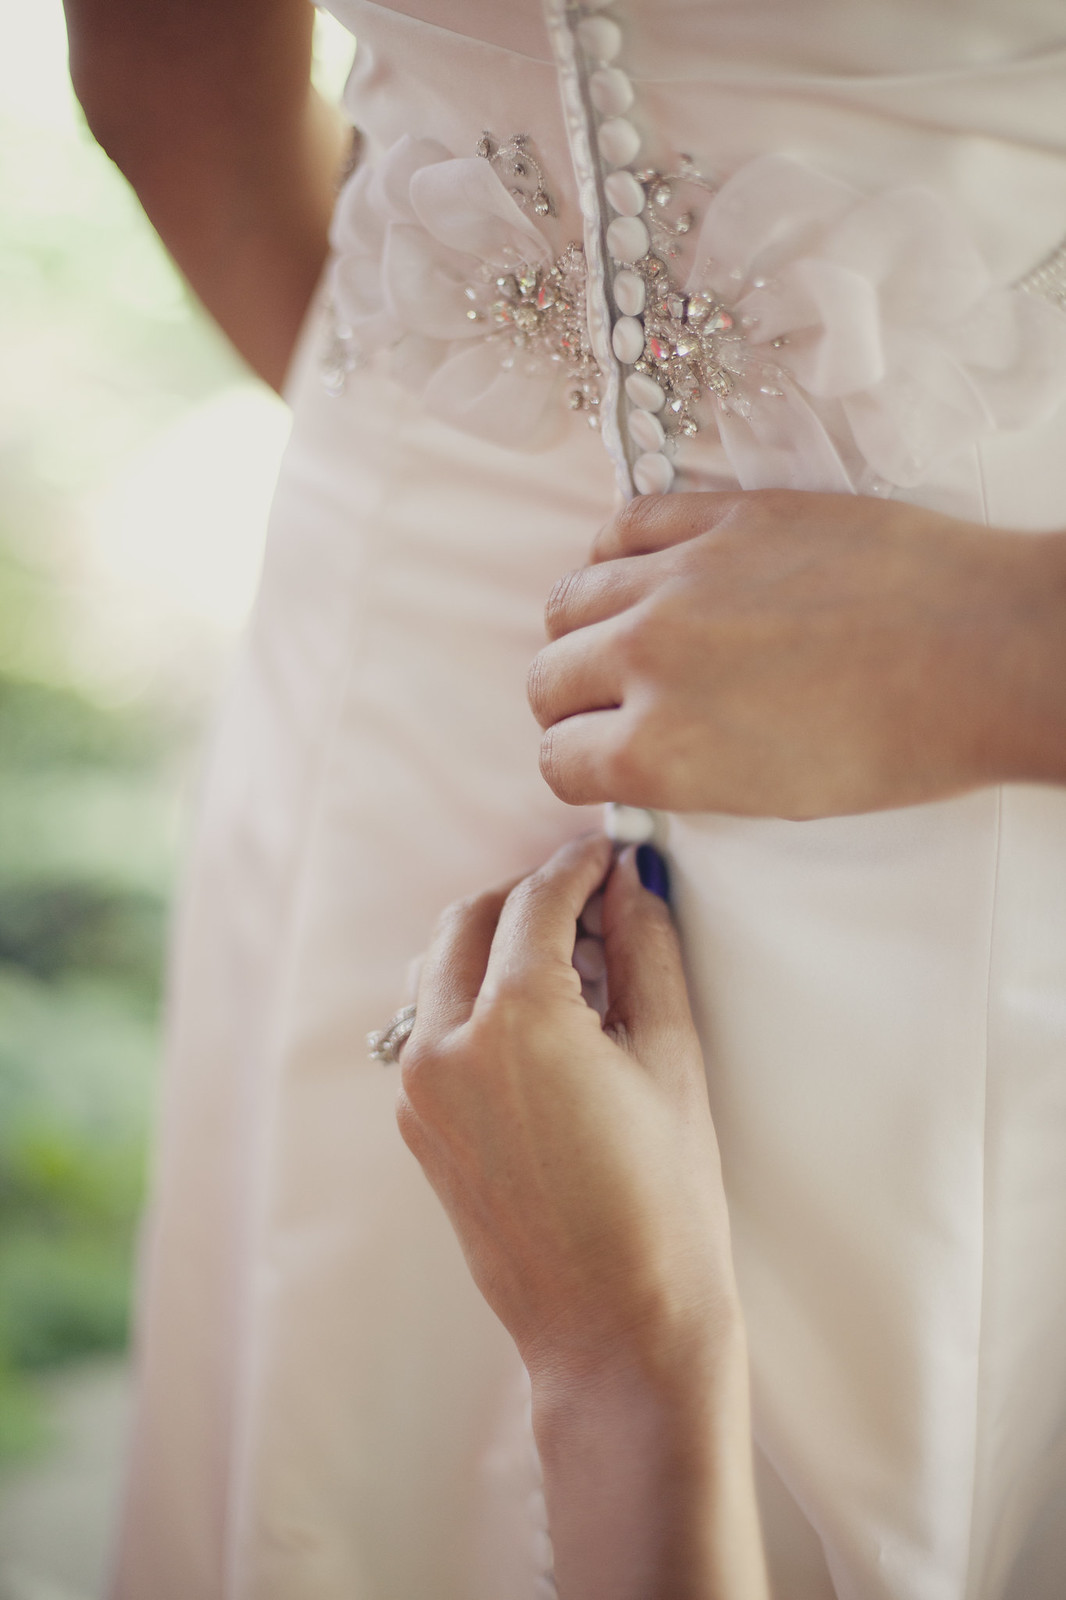 Buttoning up a beautiful wedding dress before the ceremony